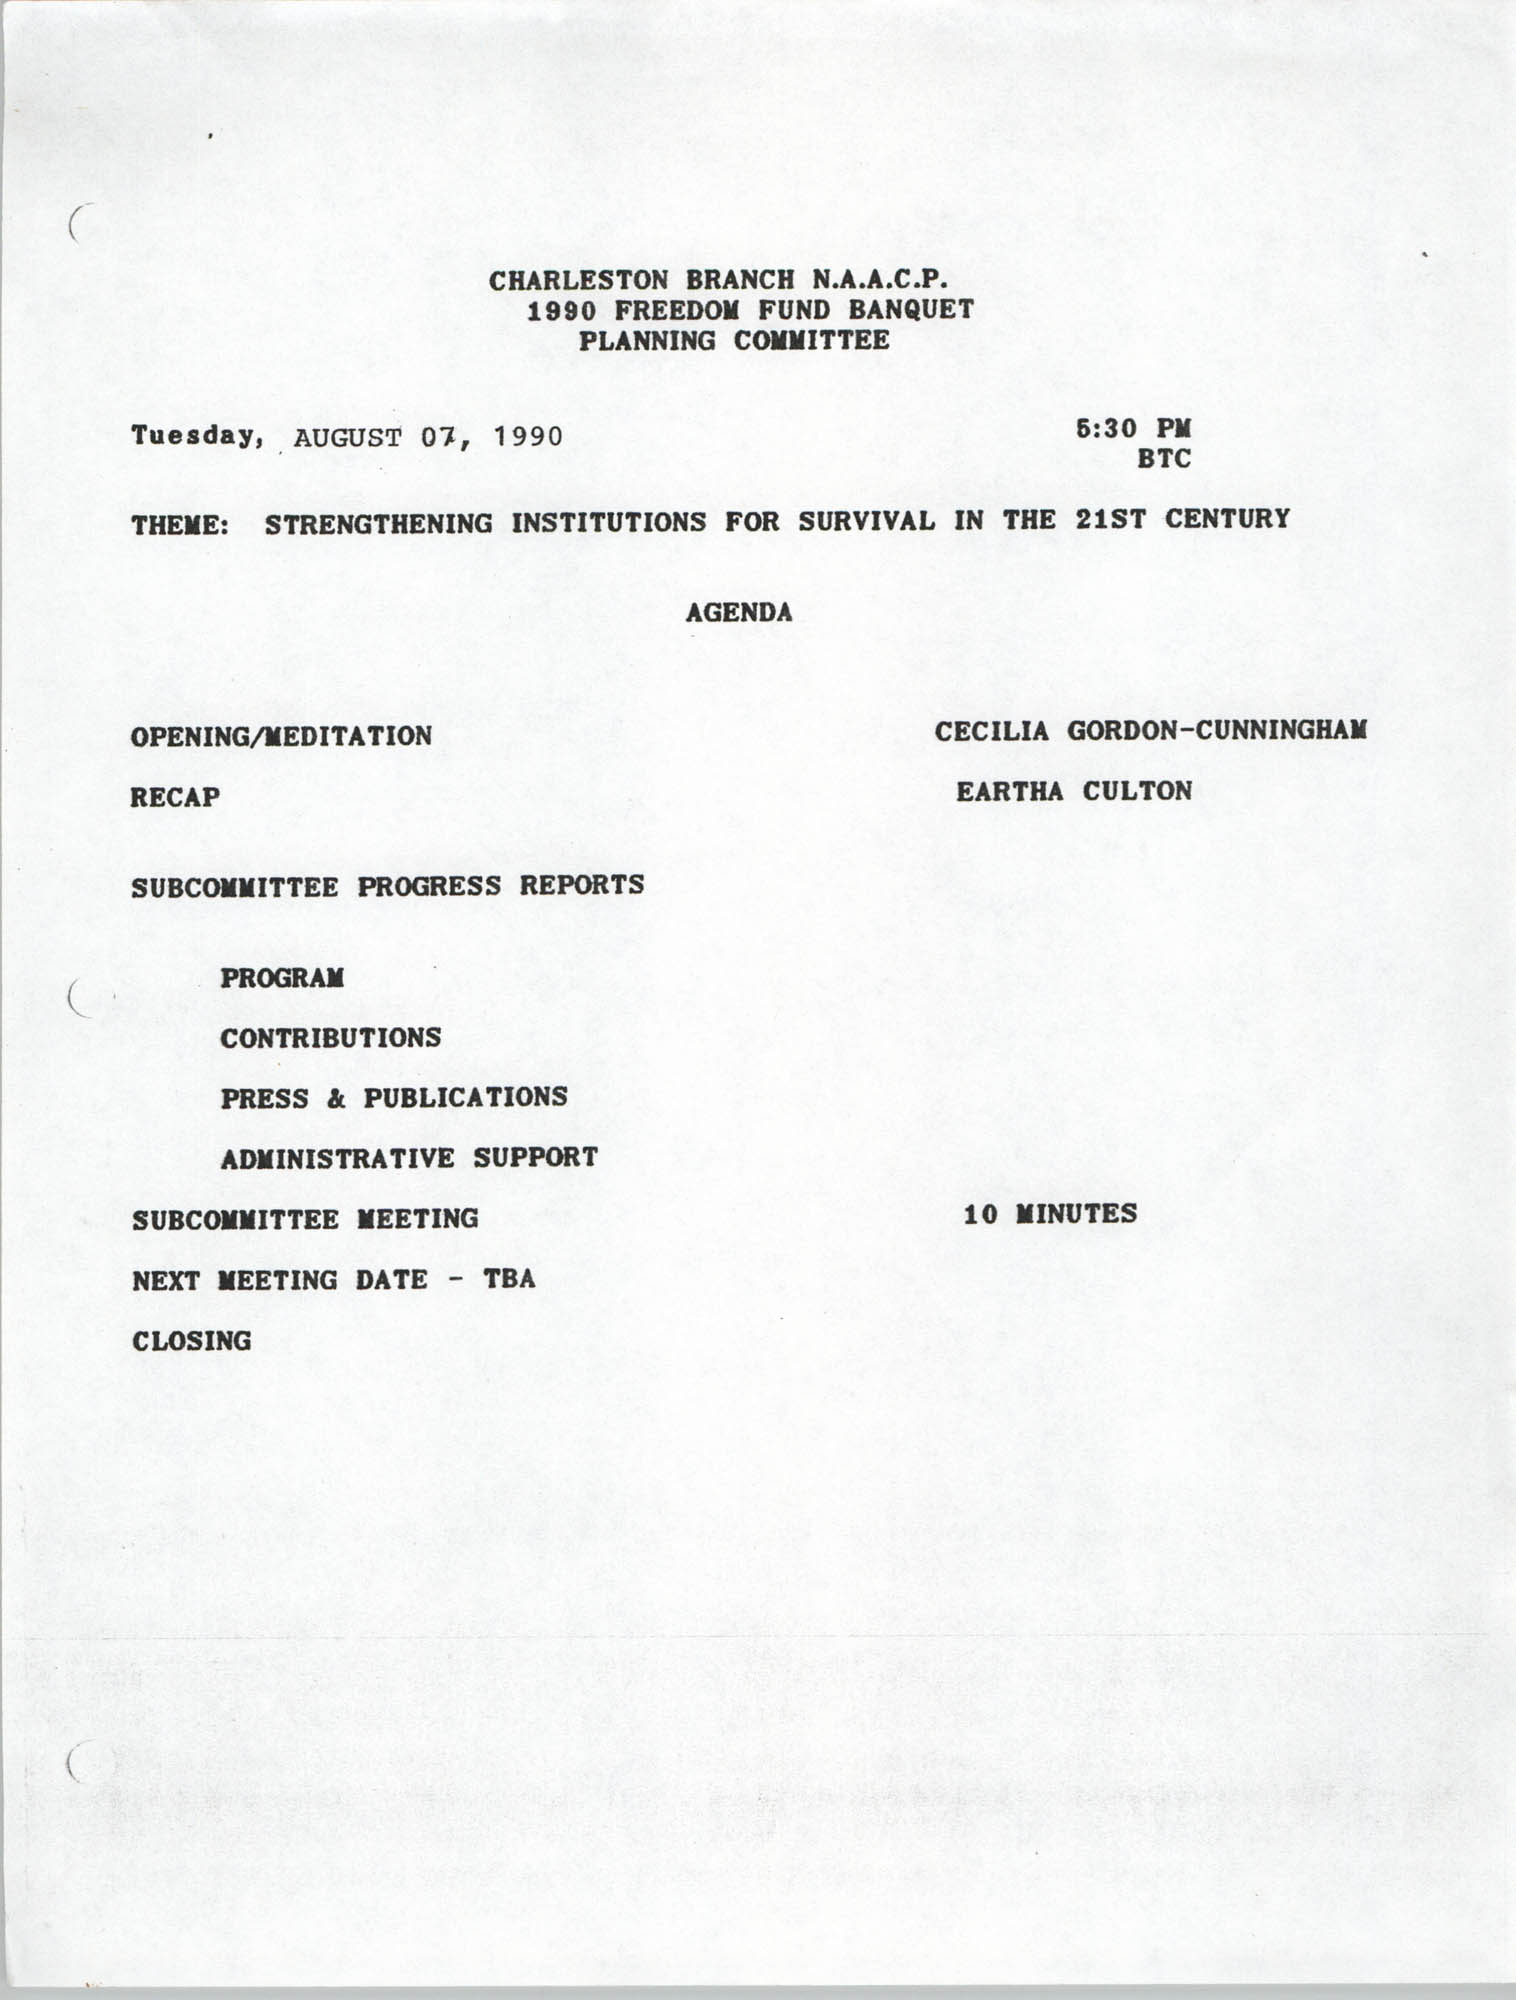 Agenda, Planning Committee, 1990 Freedom Fund Banquet, National Association for the Advancement of Colored People, August 7, 1990